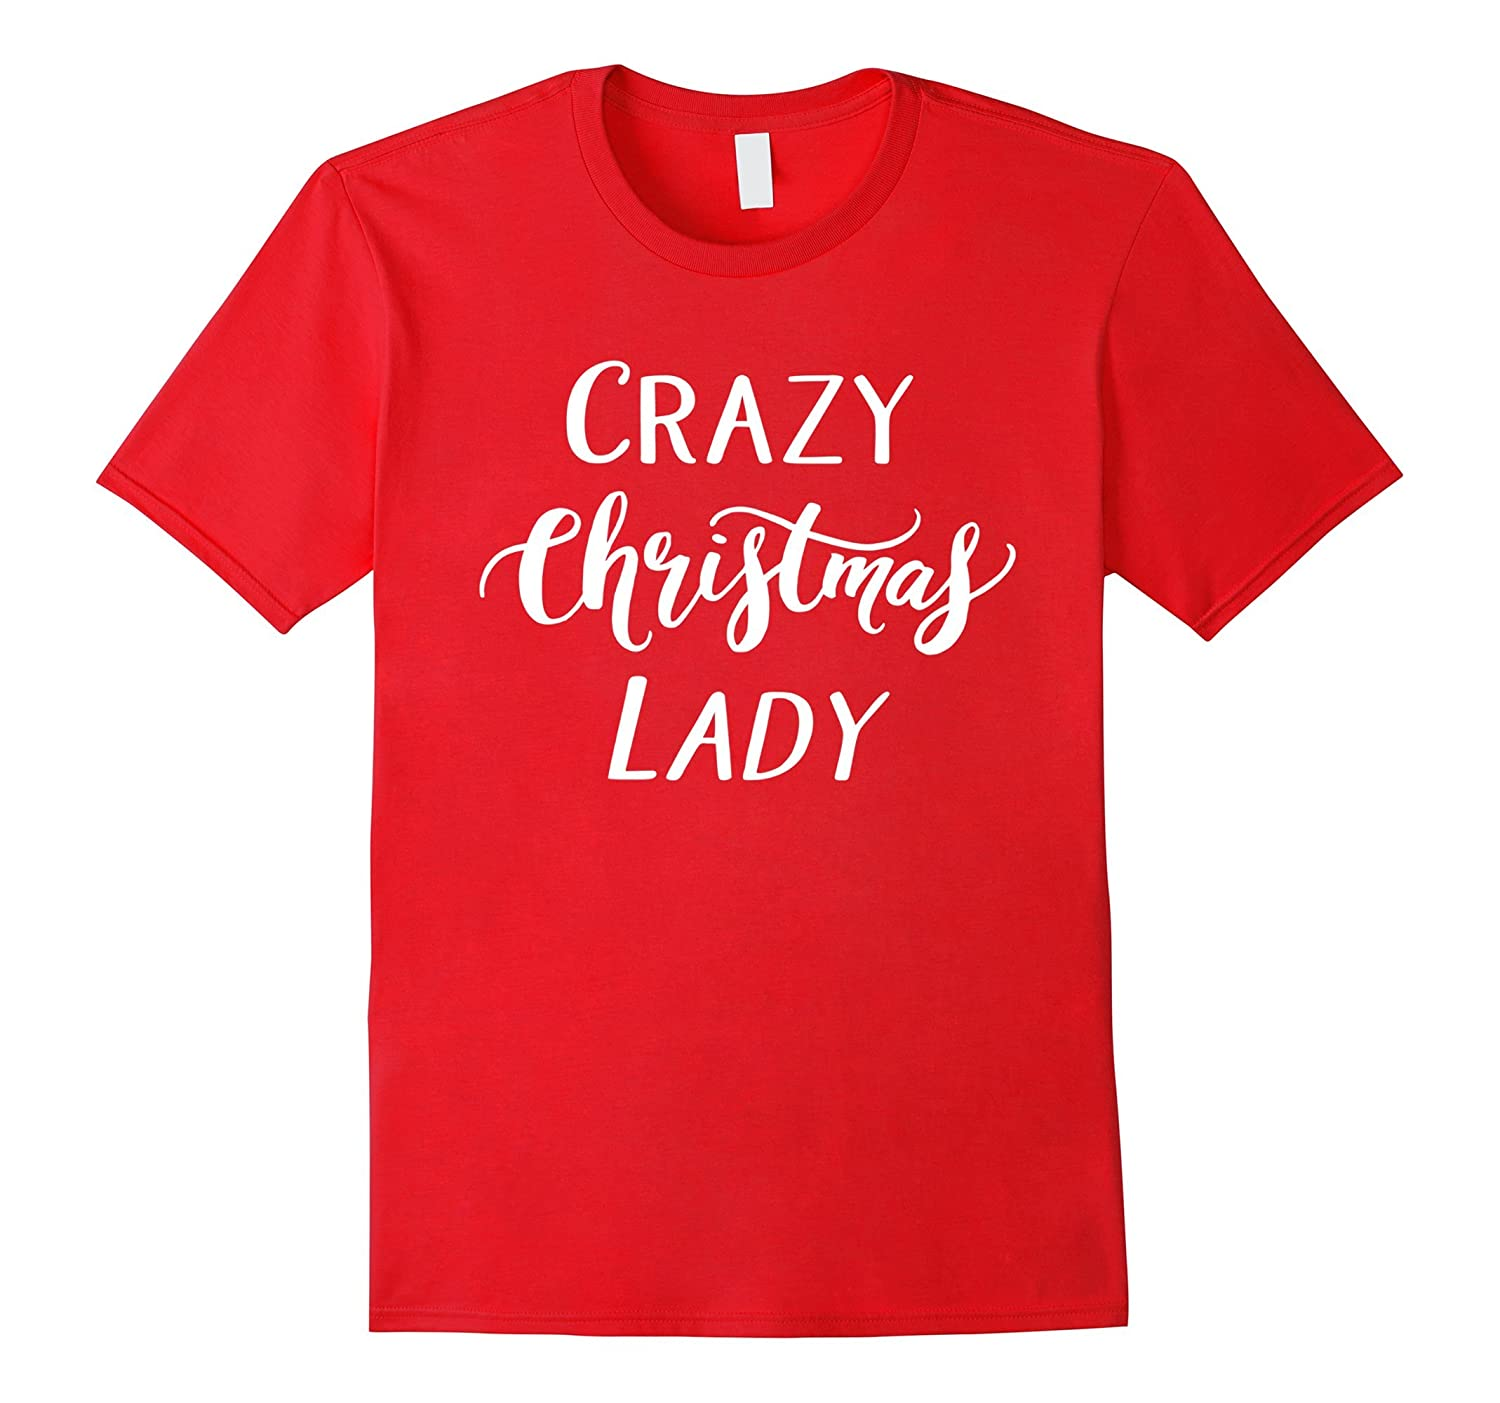 Crazy Christmas Lady T Shirt Funny Party Shopping-ANZ